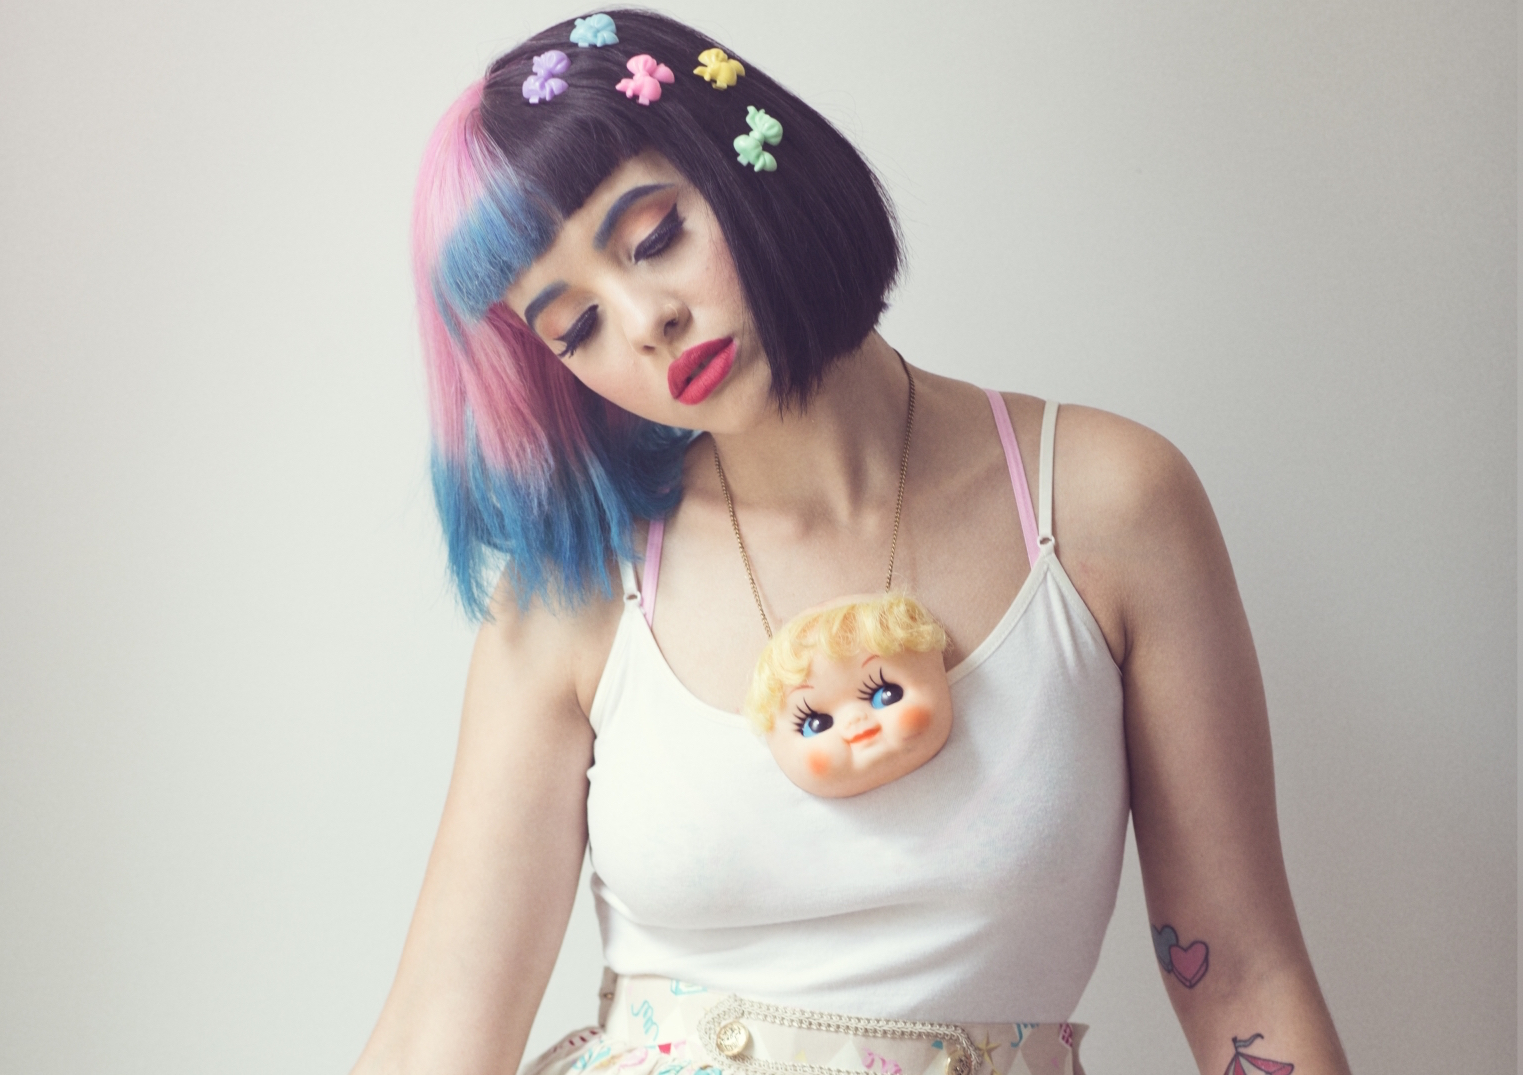 Cute Doll Hd Wallpaper For Desktop Exclusive You Won T Be Able To Get Melanie Martinez S